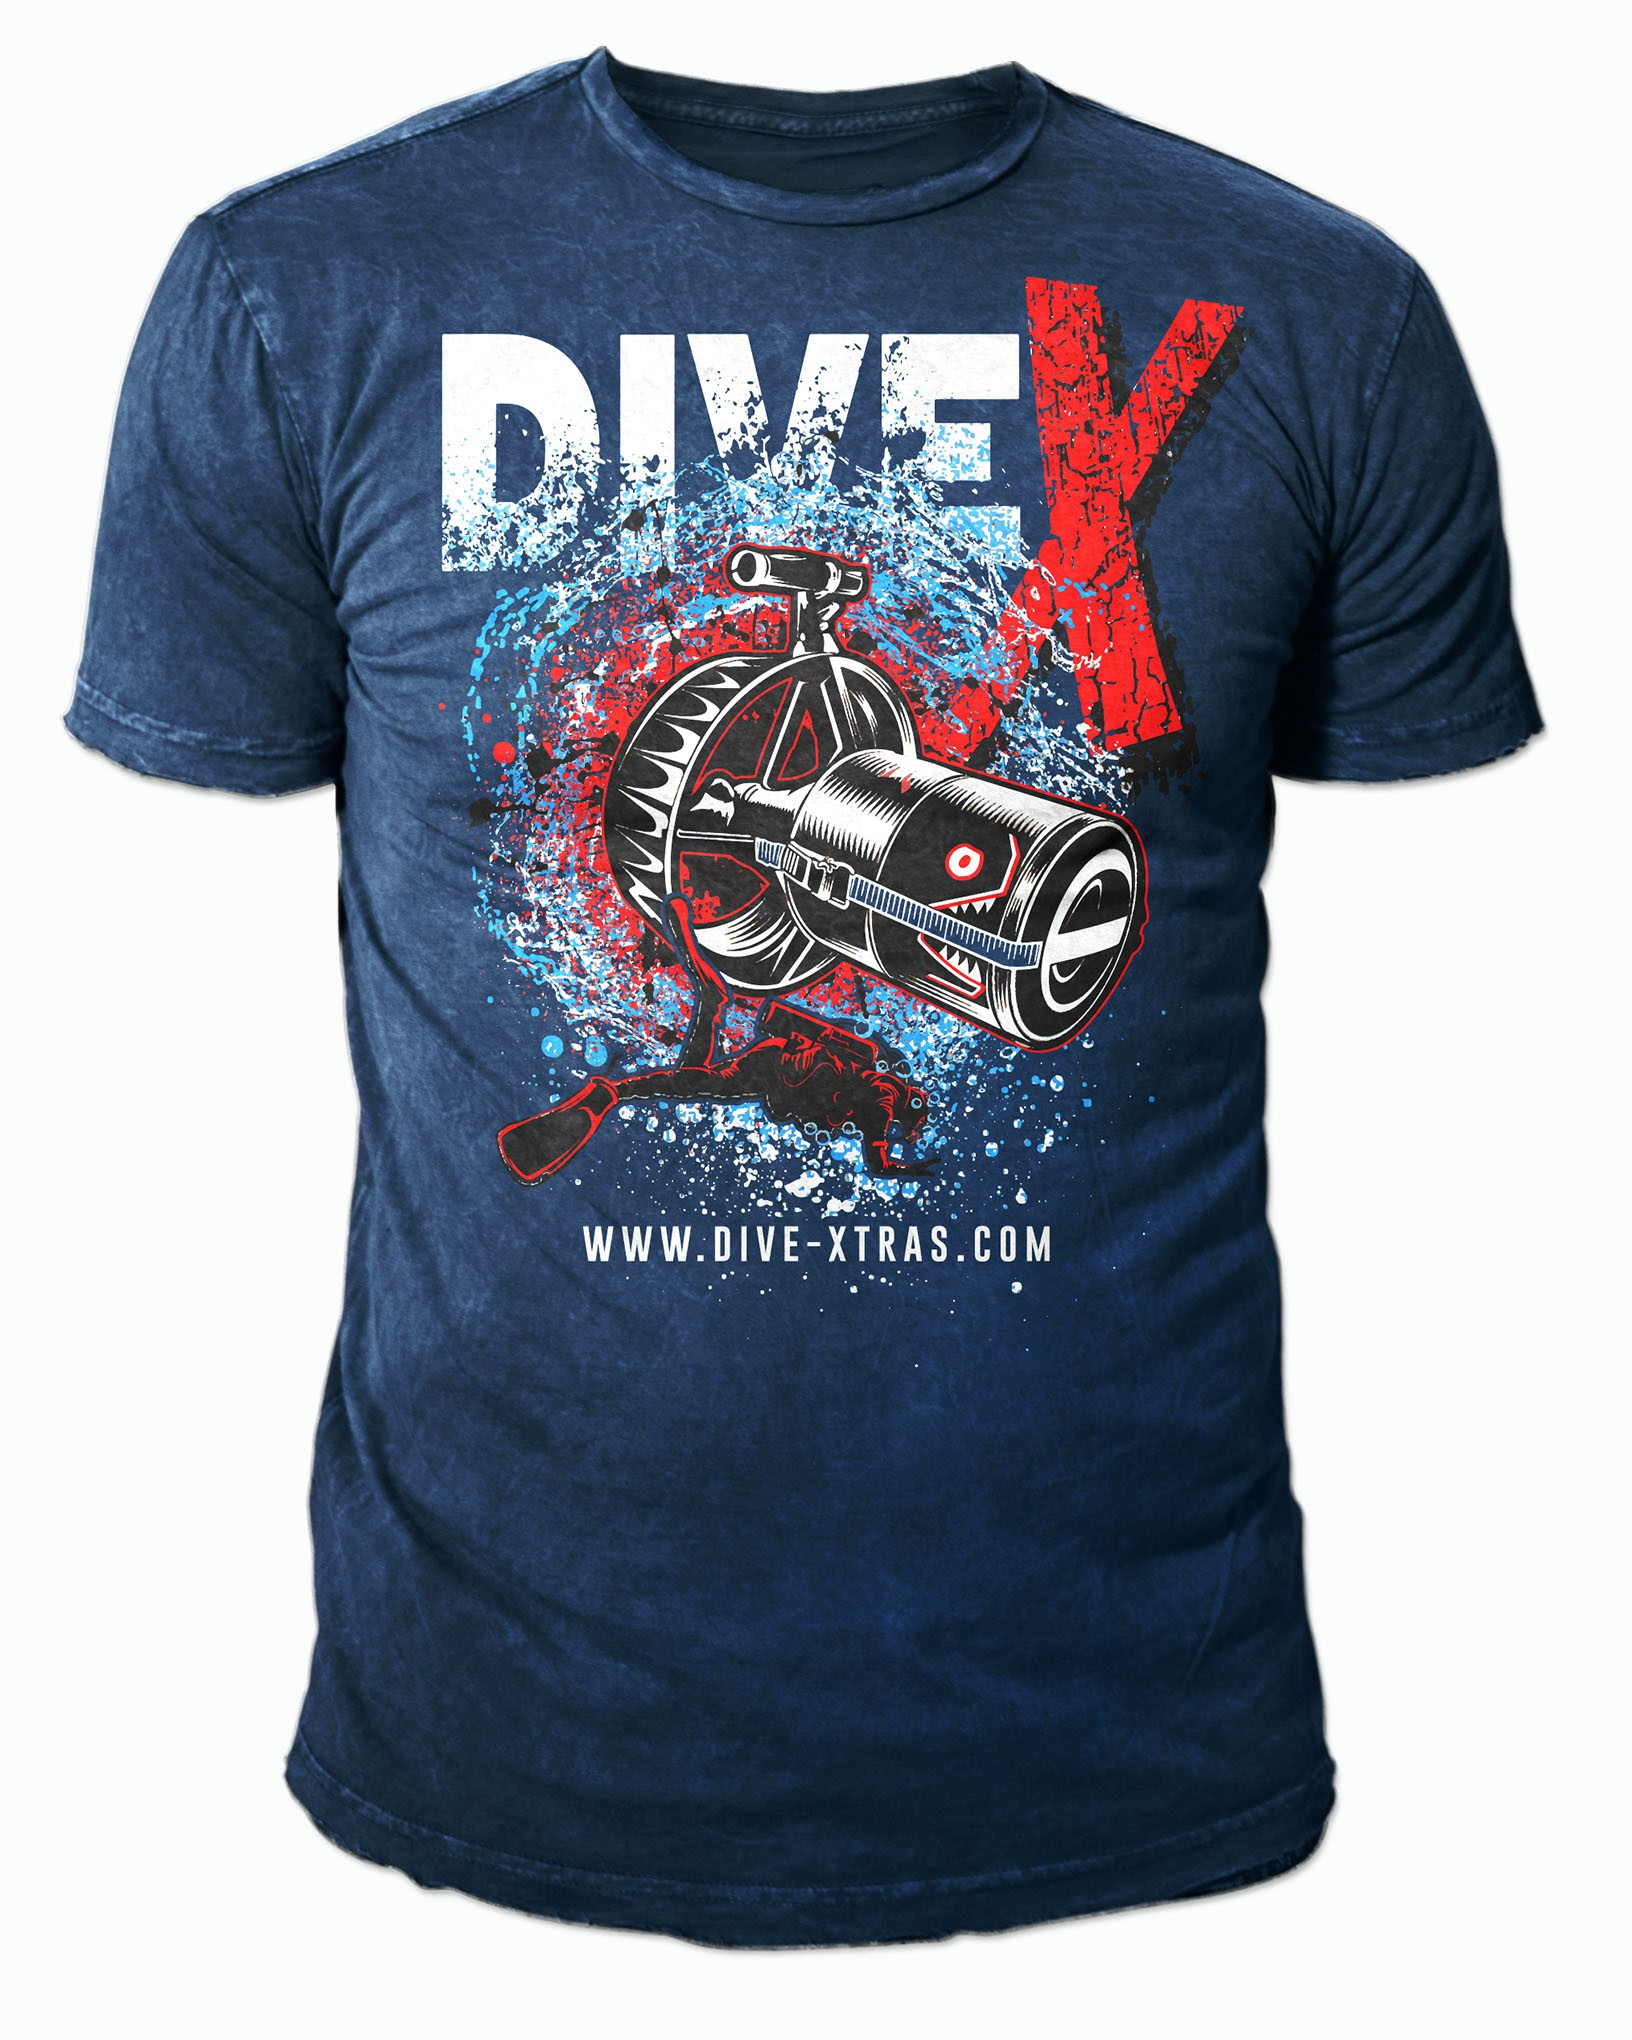 Diving Manufacture Est. in 2003 needs a T-shirt that reflects sustainability with a modern flair